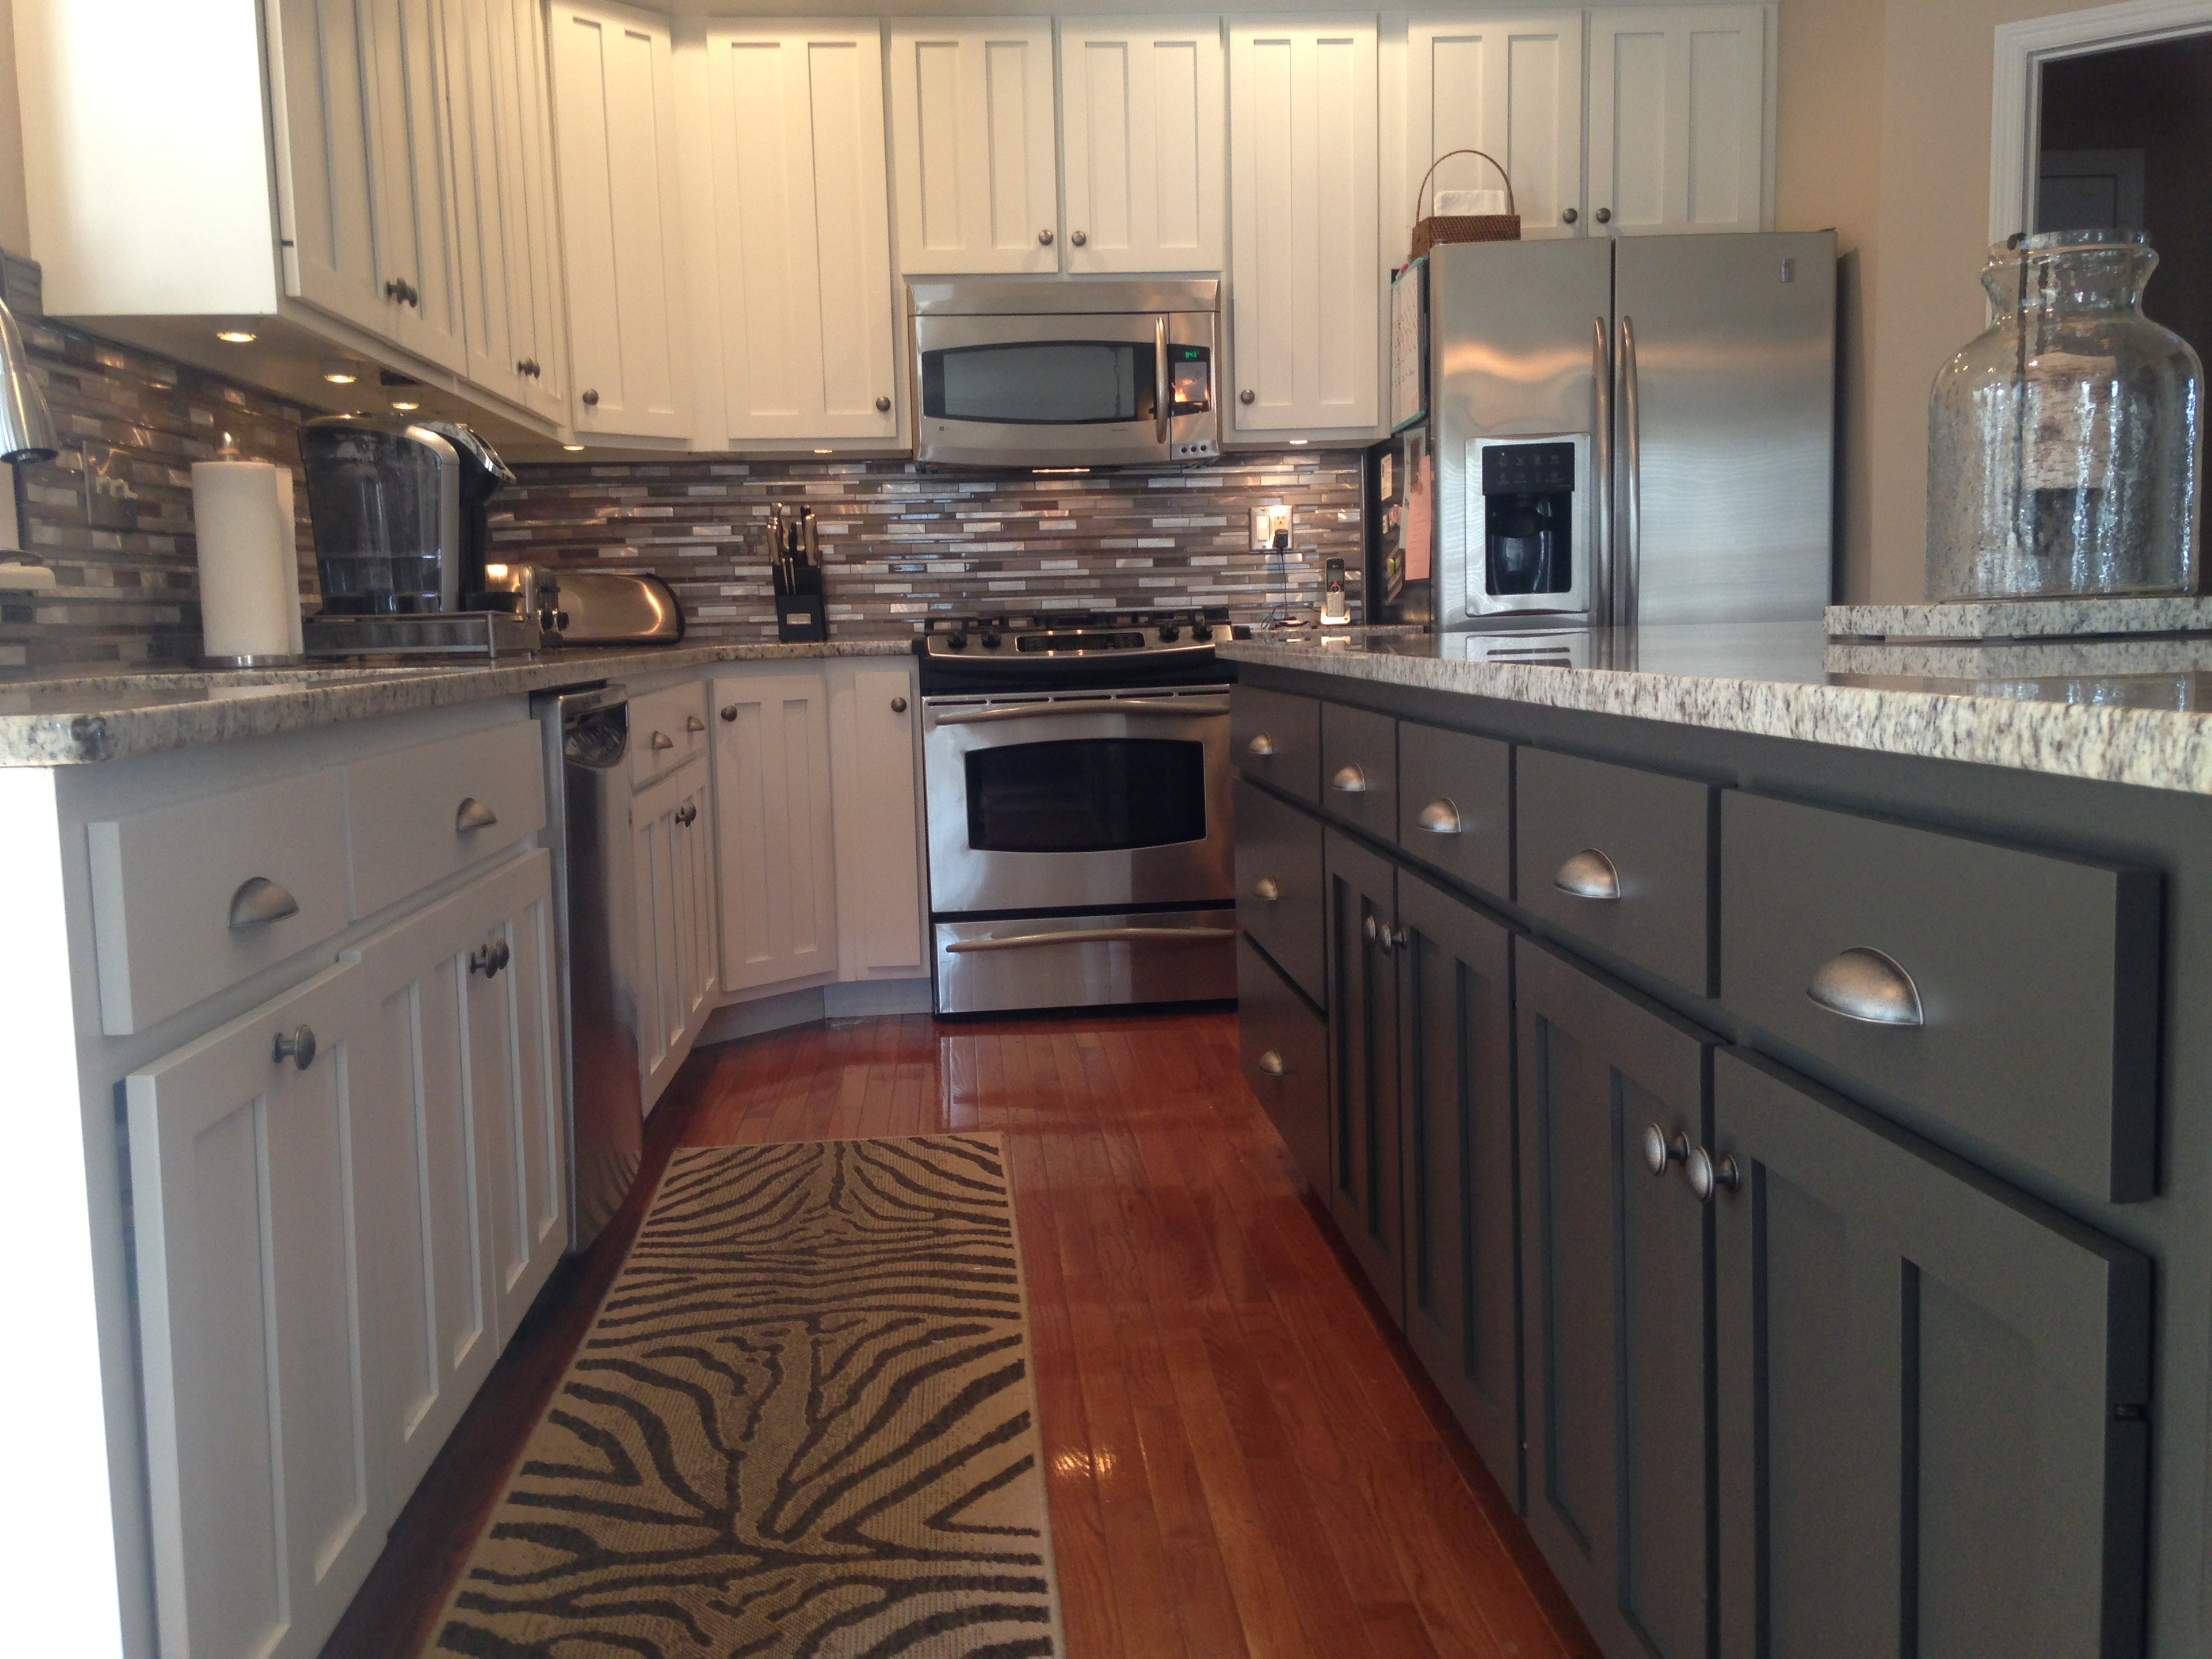 Best Just Add Paint Star Cabinet Refinish Painters In Harrisubrg Pa With  Kitchen Cabinet Refacing Harrisburg Pa